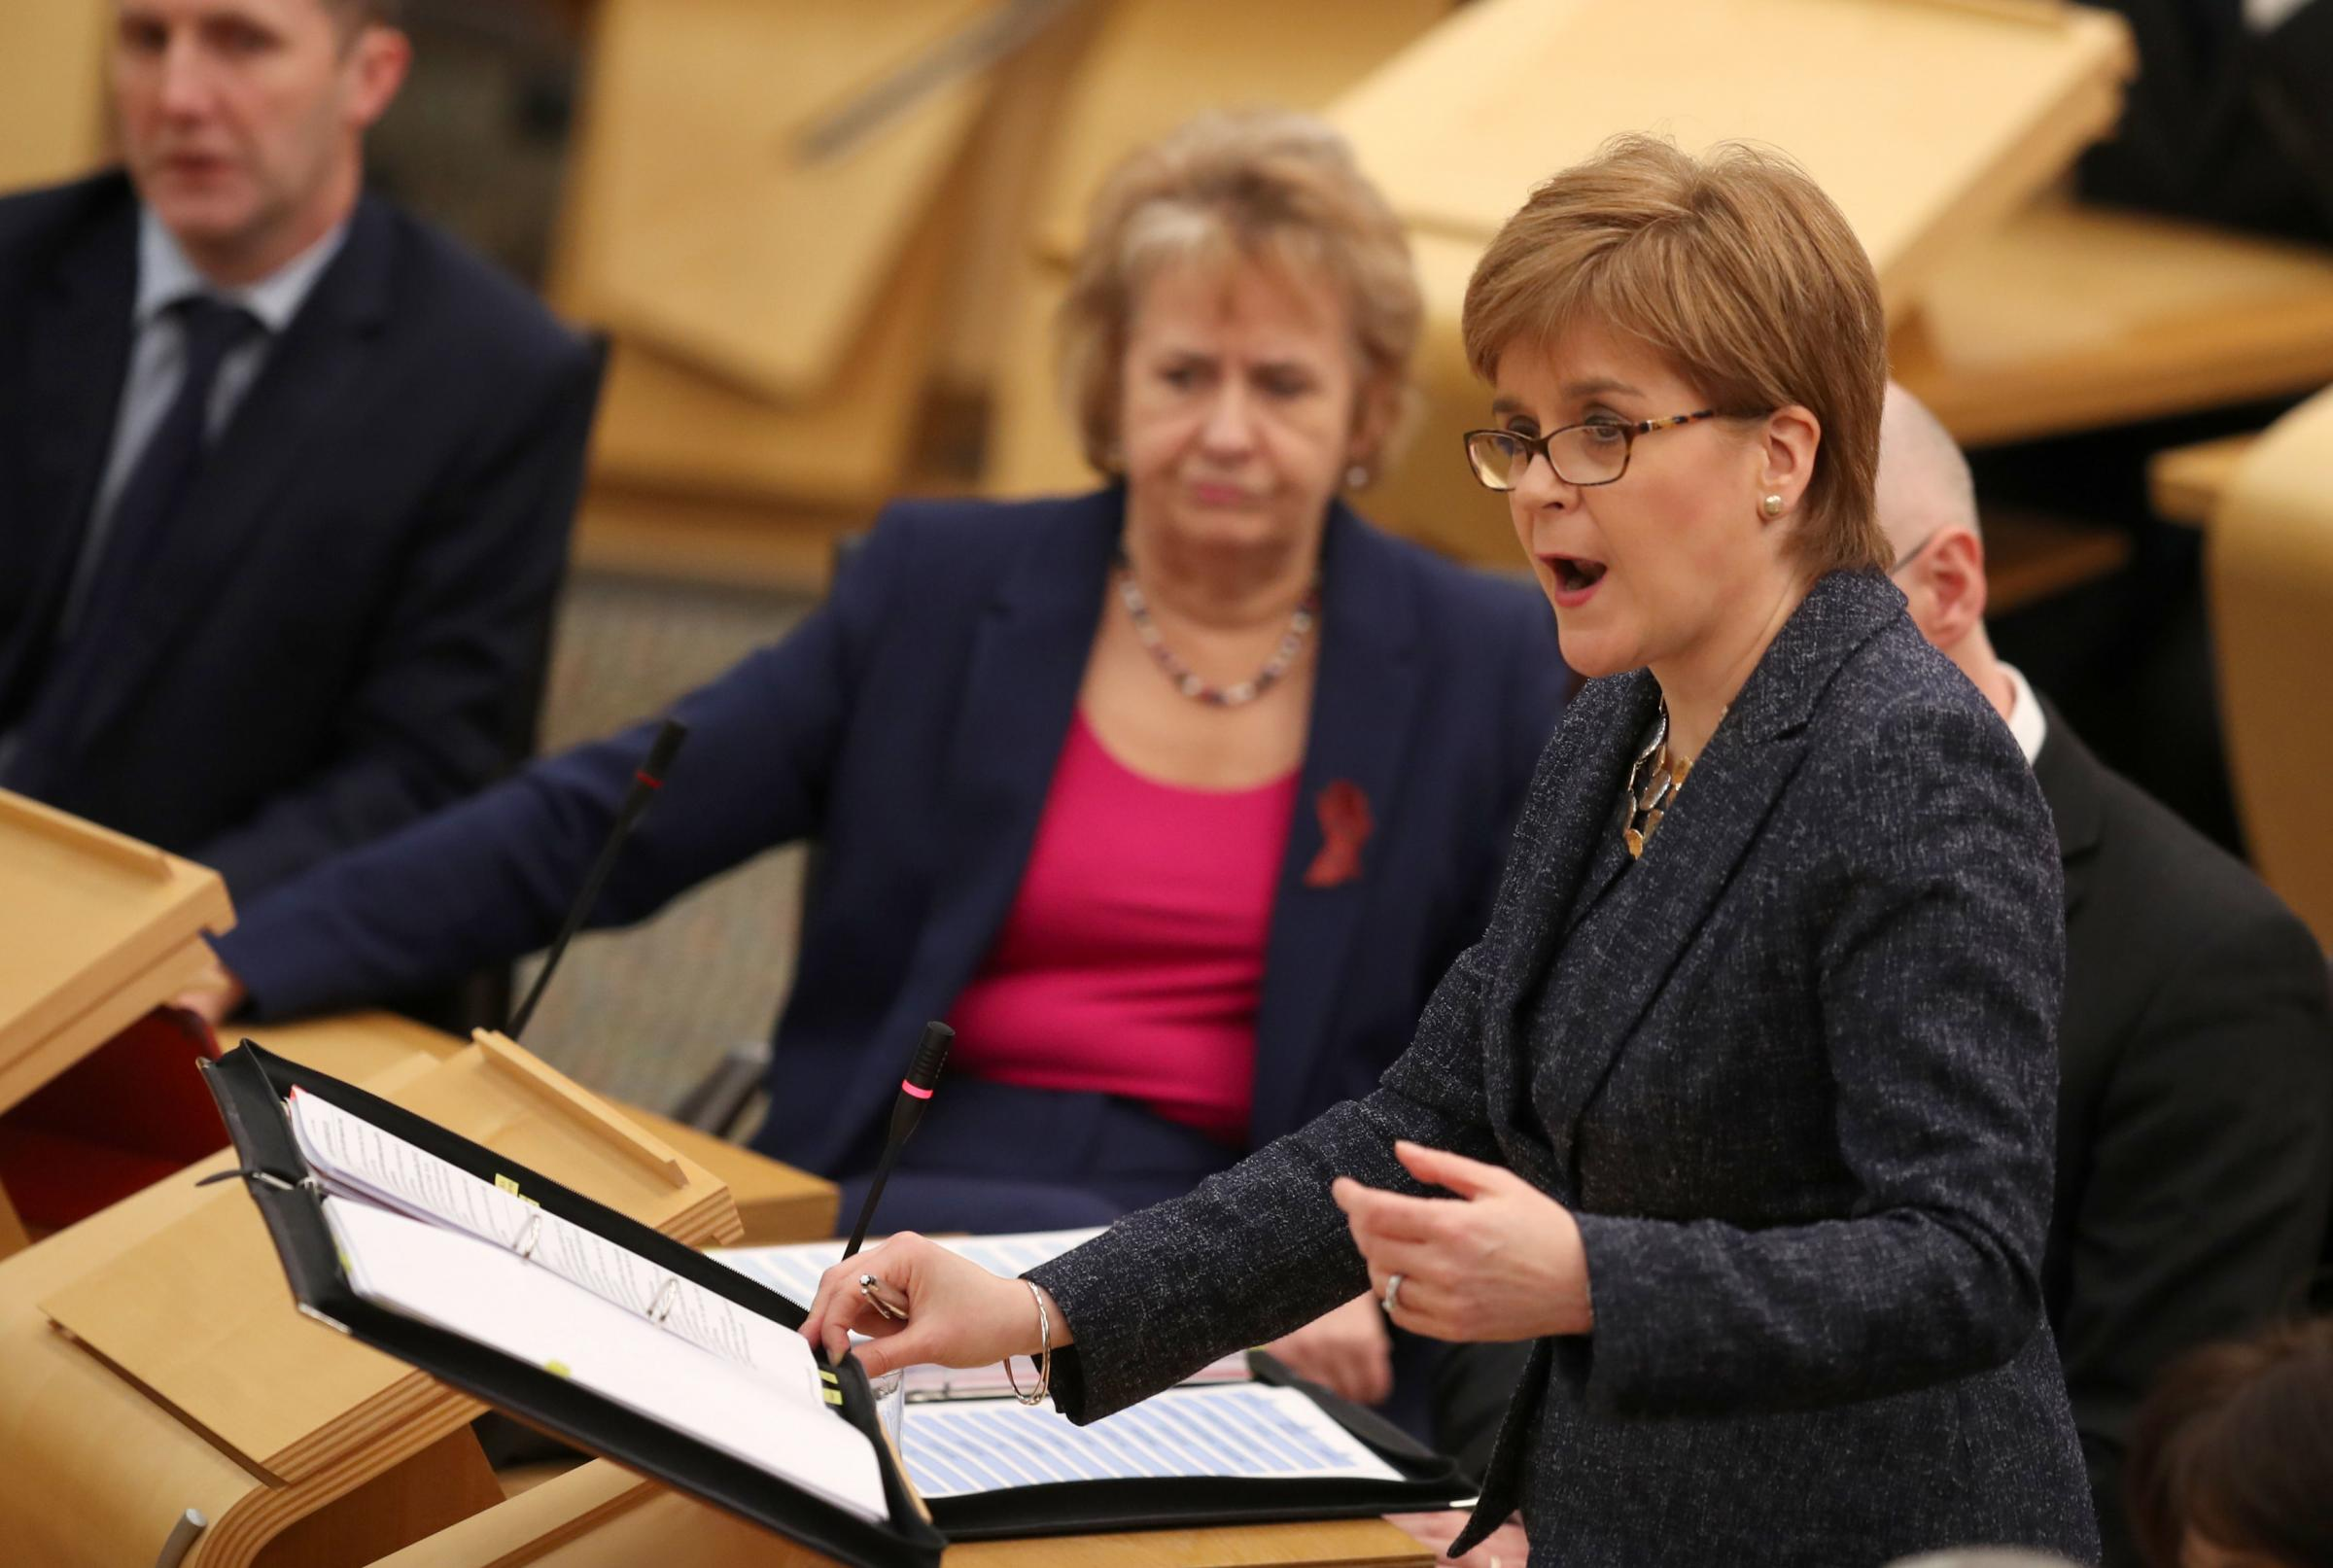 First Minister Nicola Sturgeon has slammed the Home Office decision